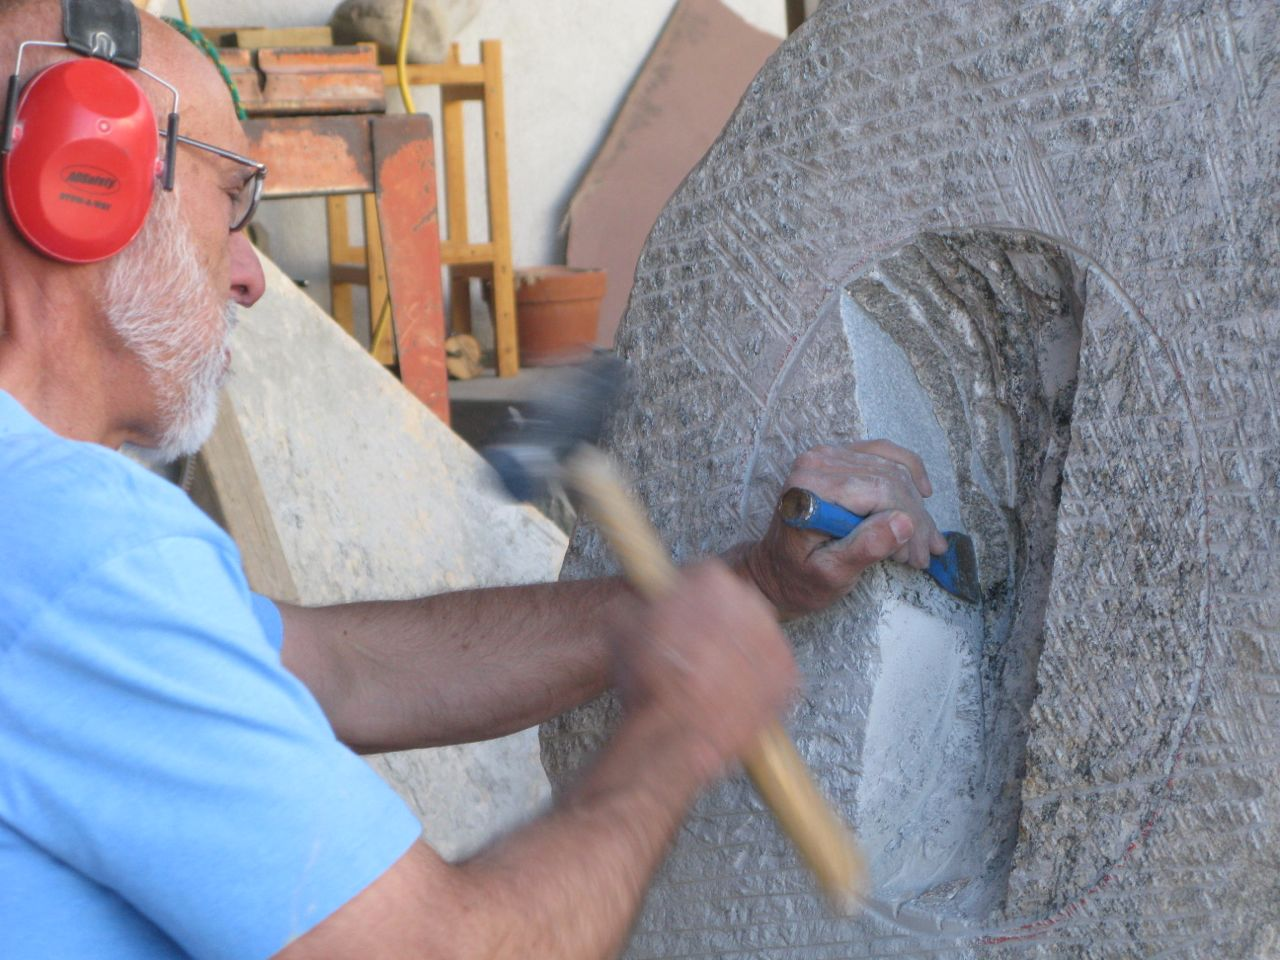 Richard chisels the excess from a one-ton granite boulder.